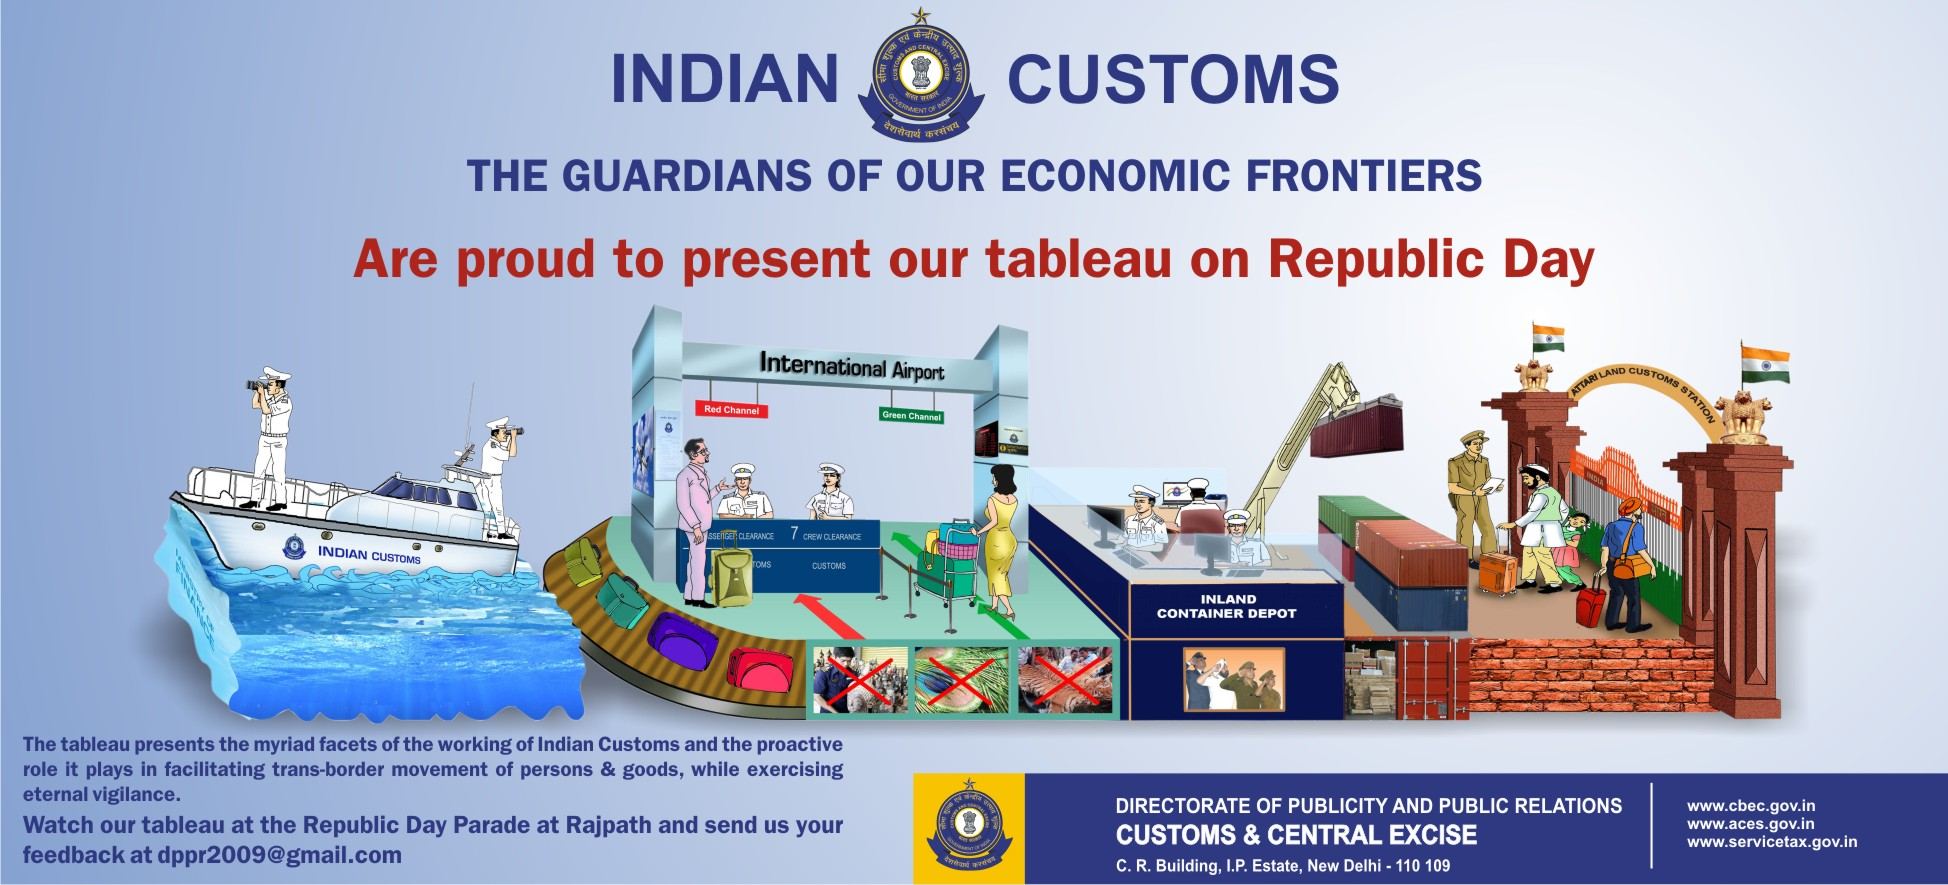 IceGate : e-Commerce Portal of Central Board of Excise and